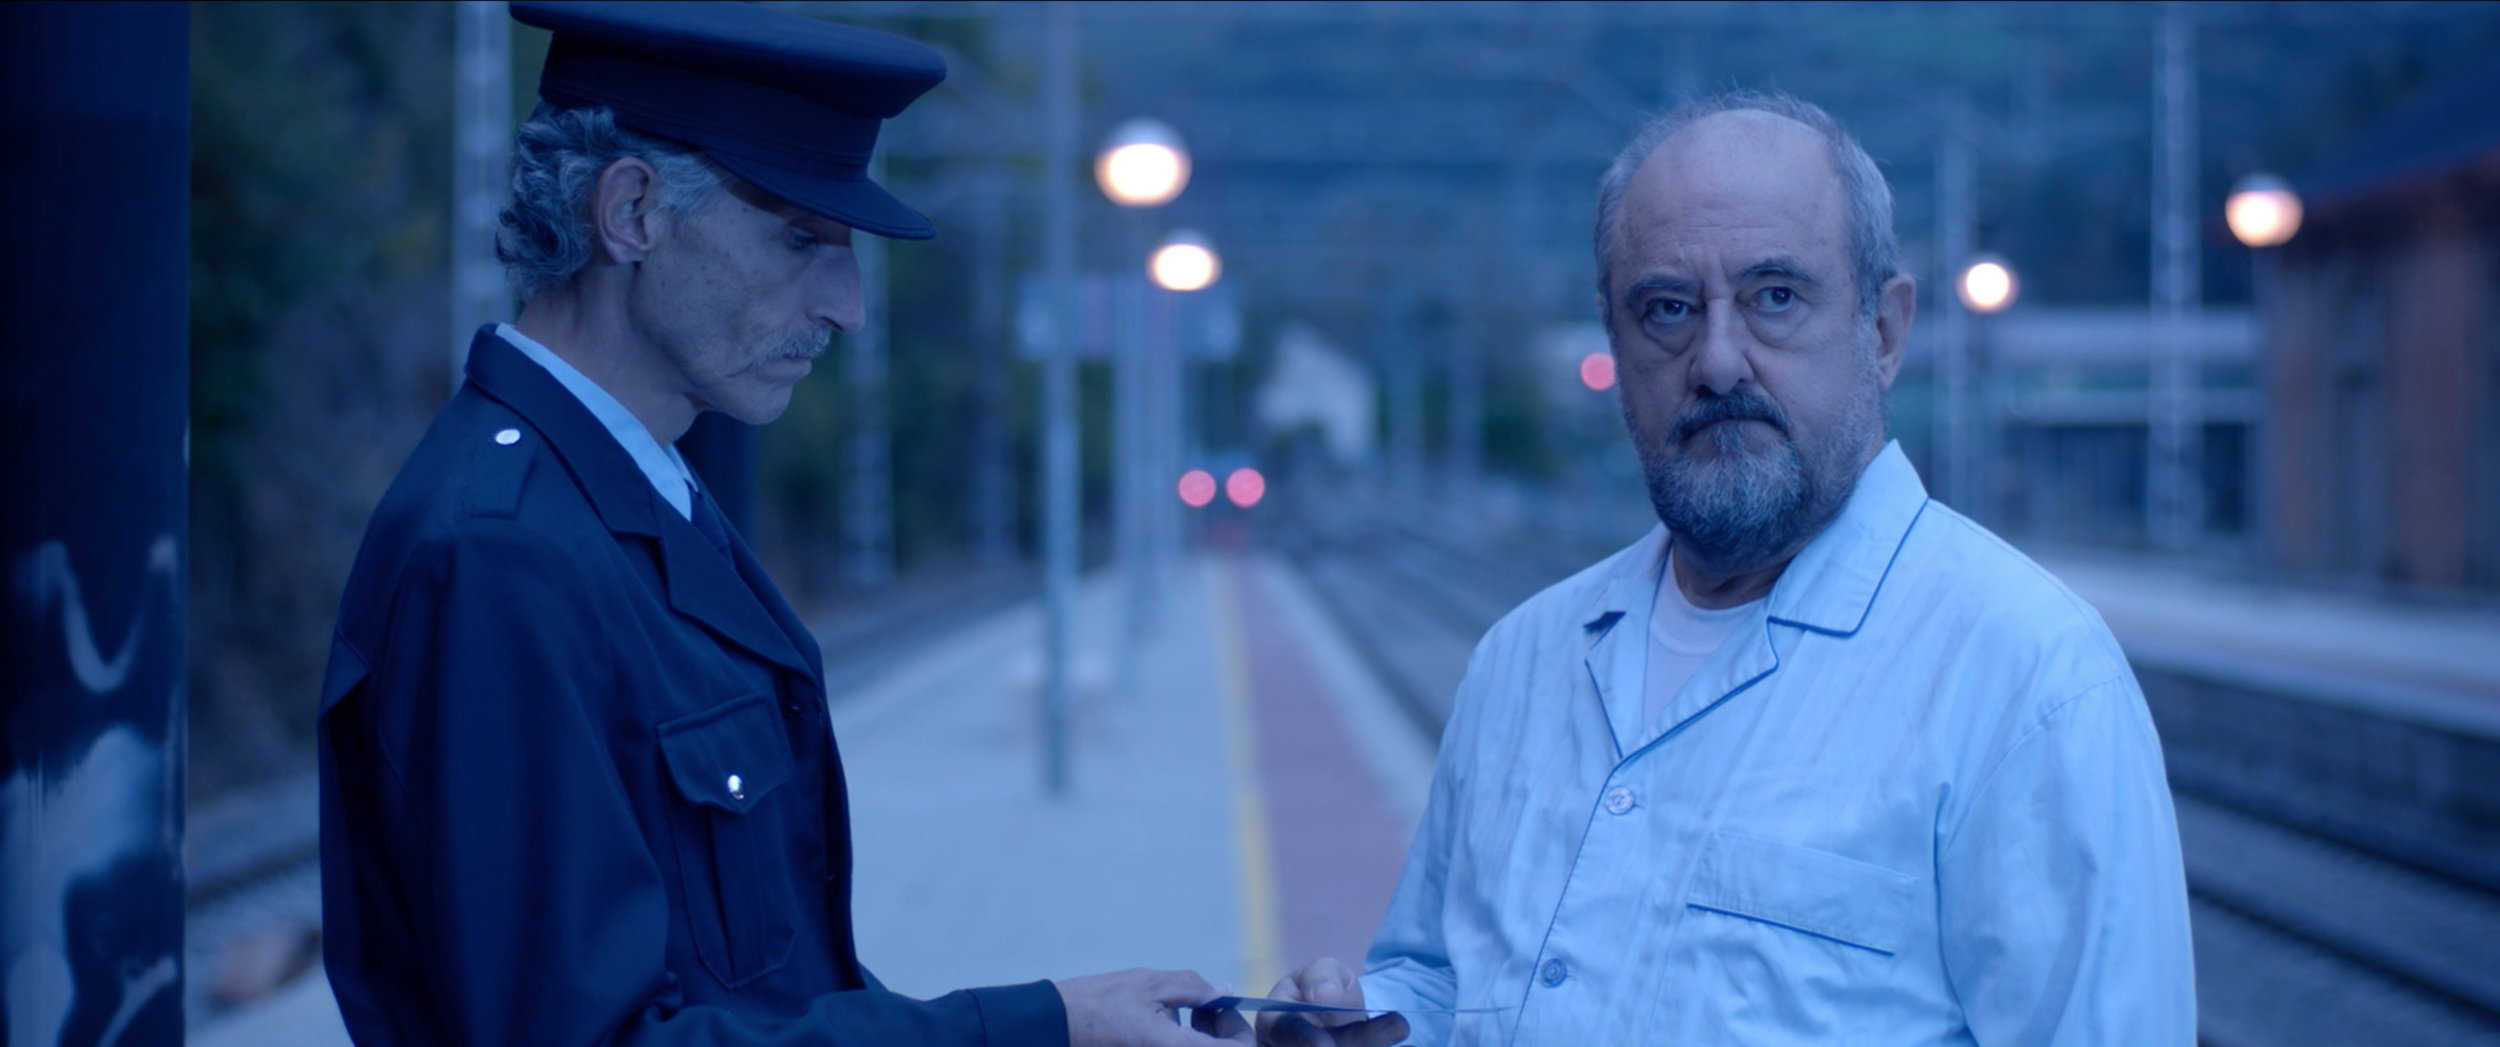 Still from La Estación, winner of the Grand Jury Award for College Narrative.